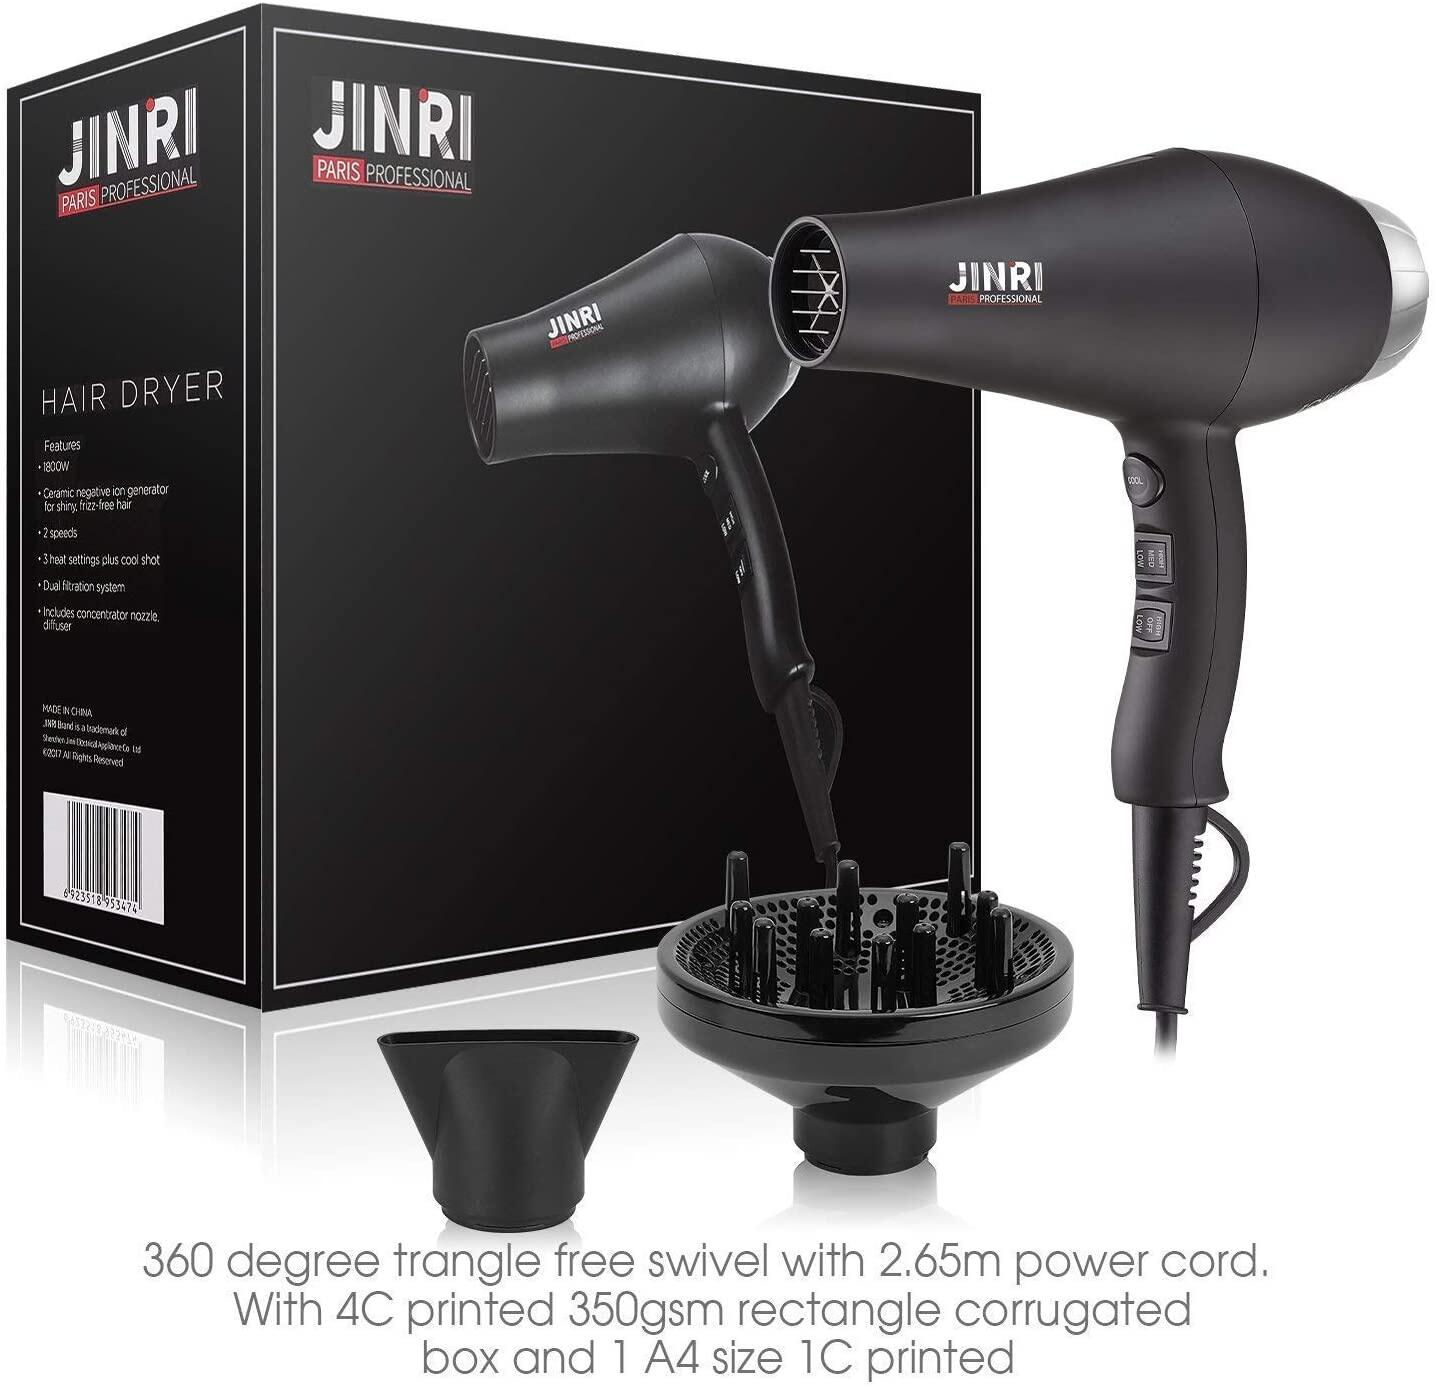 Hair dryer with diffuser for curls, Test winner with negative ions Hair dryer 3 heating and 2 separate blower levels / cooling level 1800W hairdryer with diffuser for curls, design styling nozzles, 2 attachments - black Hair dryer with diffuser for curls Test winner with negative ions Hair dryer 3 heating and 2 separate blower levels / cooling level 1800W hairdryer with diffuser for curls, design styling nozzles, 2 attachments - black Hair Dryer